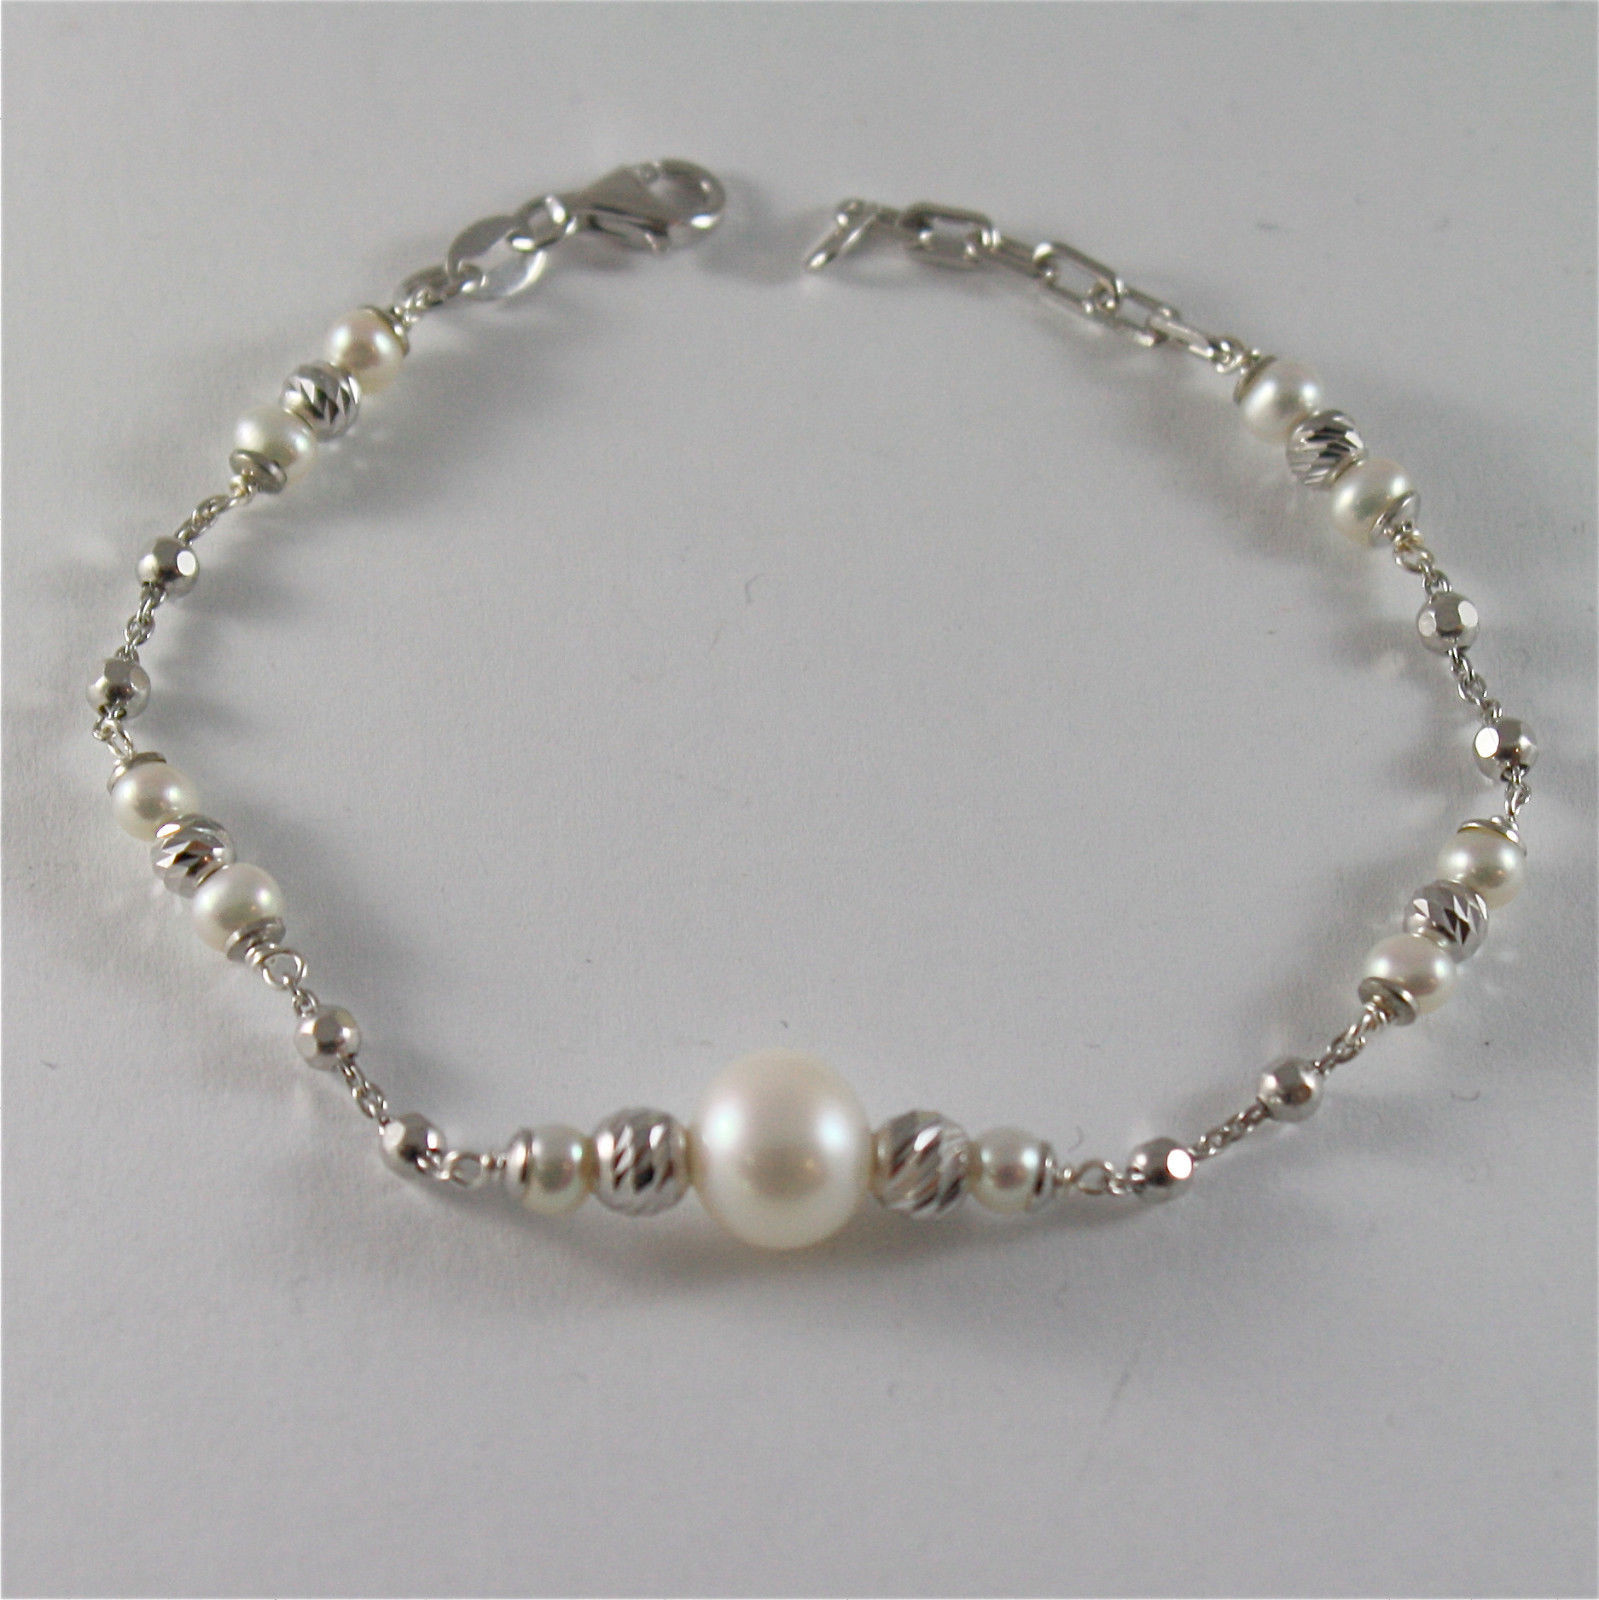 925 SILVER BRACELET WITH 8 MM ROUND FW PEARL AND FACETED BALLS